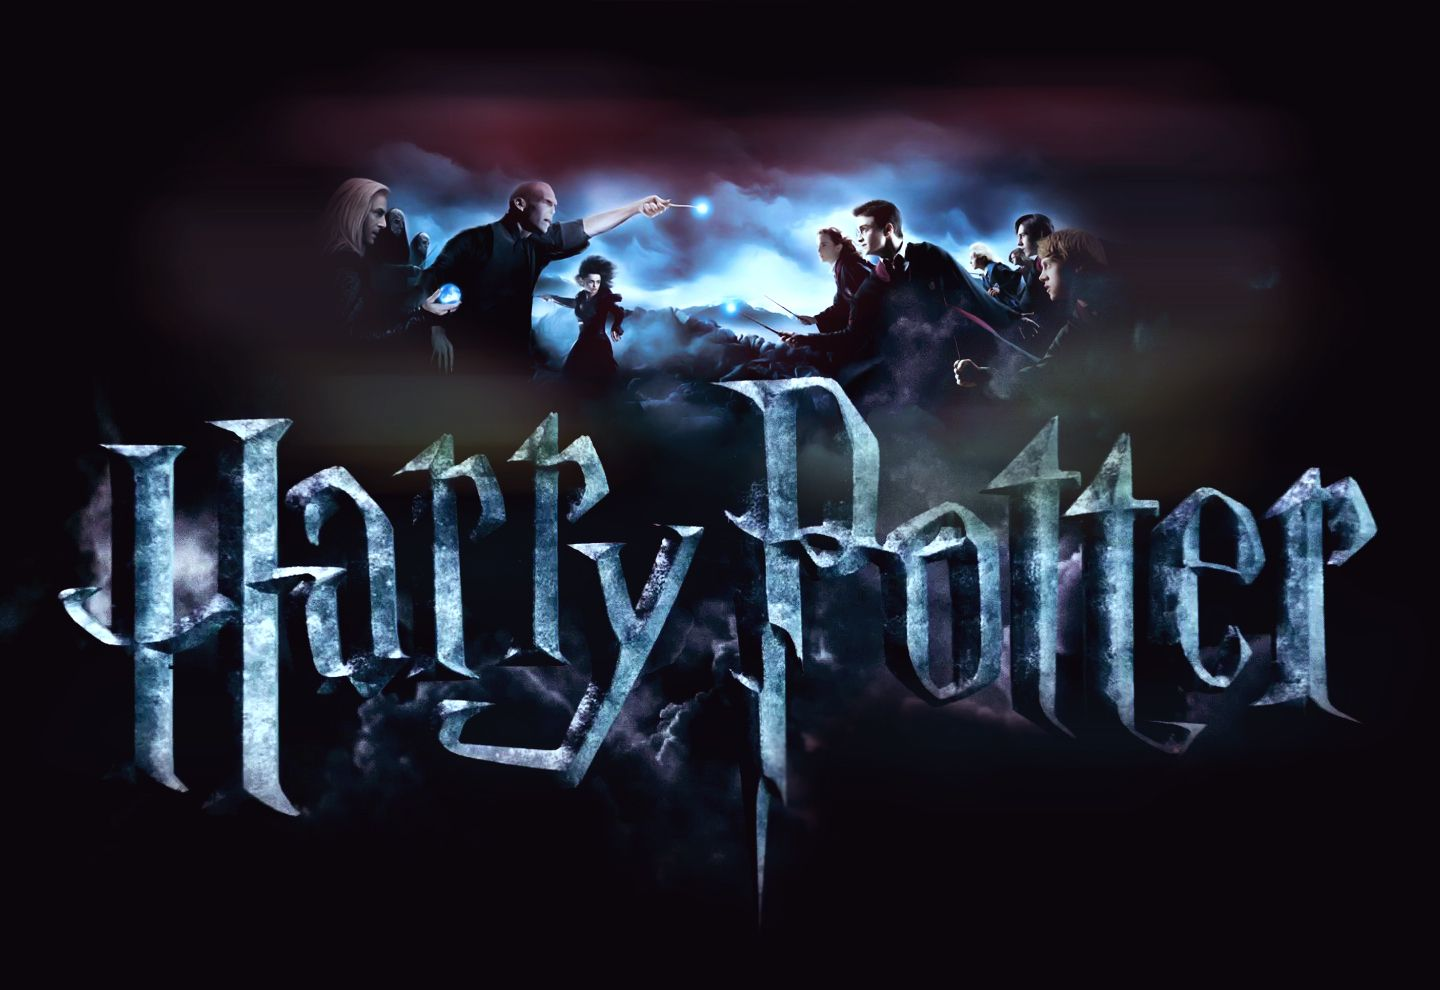 3d Harry Potter Wallpapers Hd Harry Potter Wallpaper